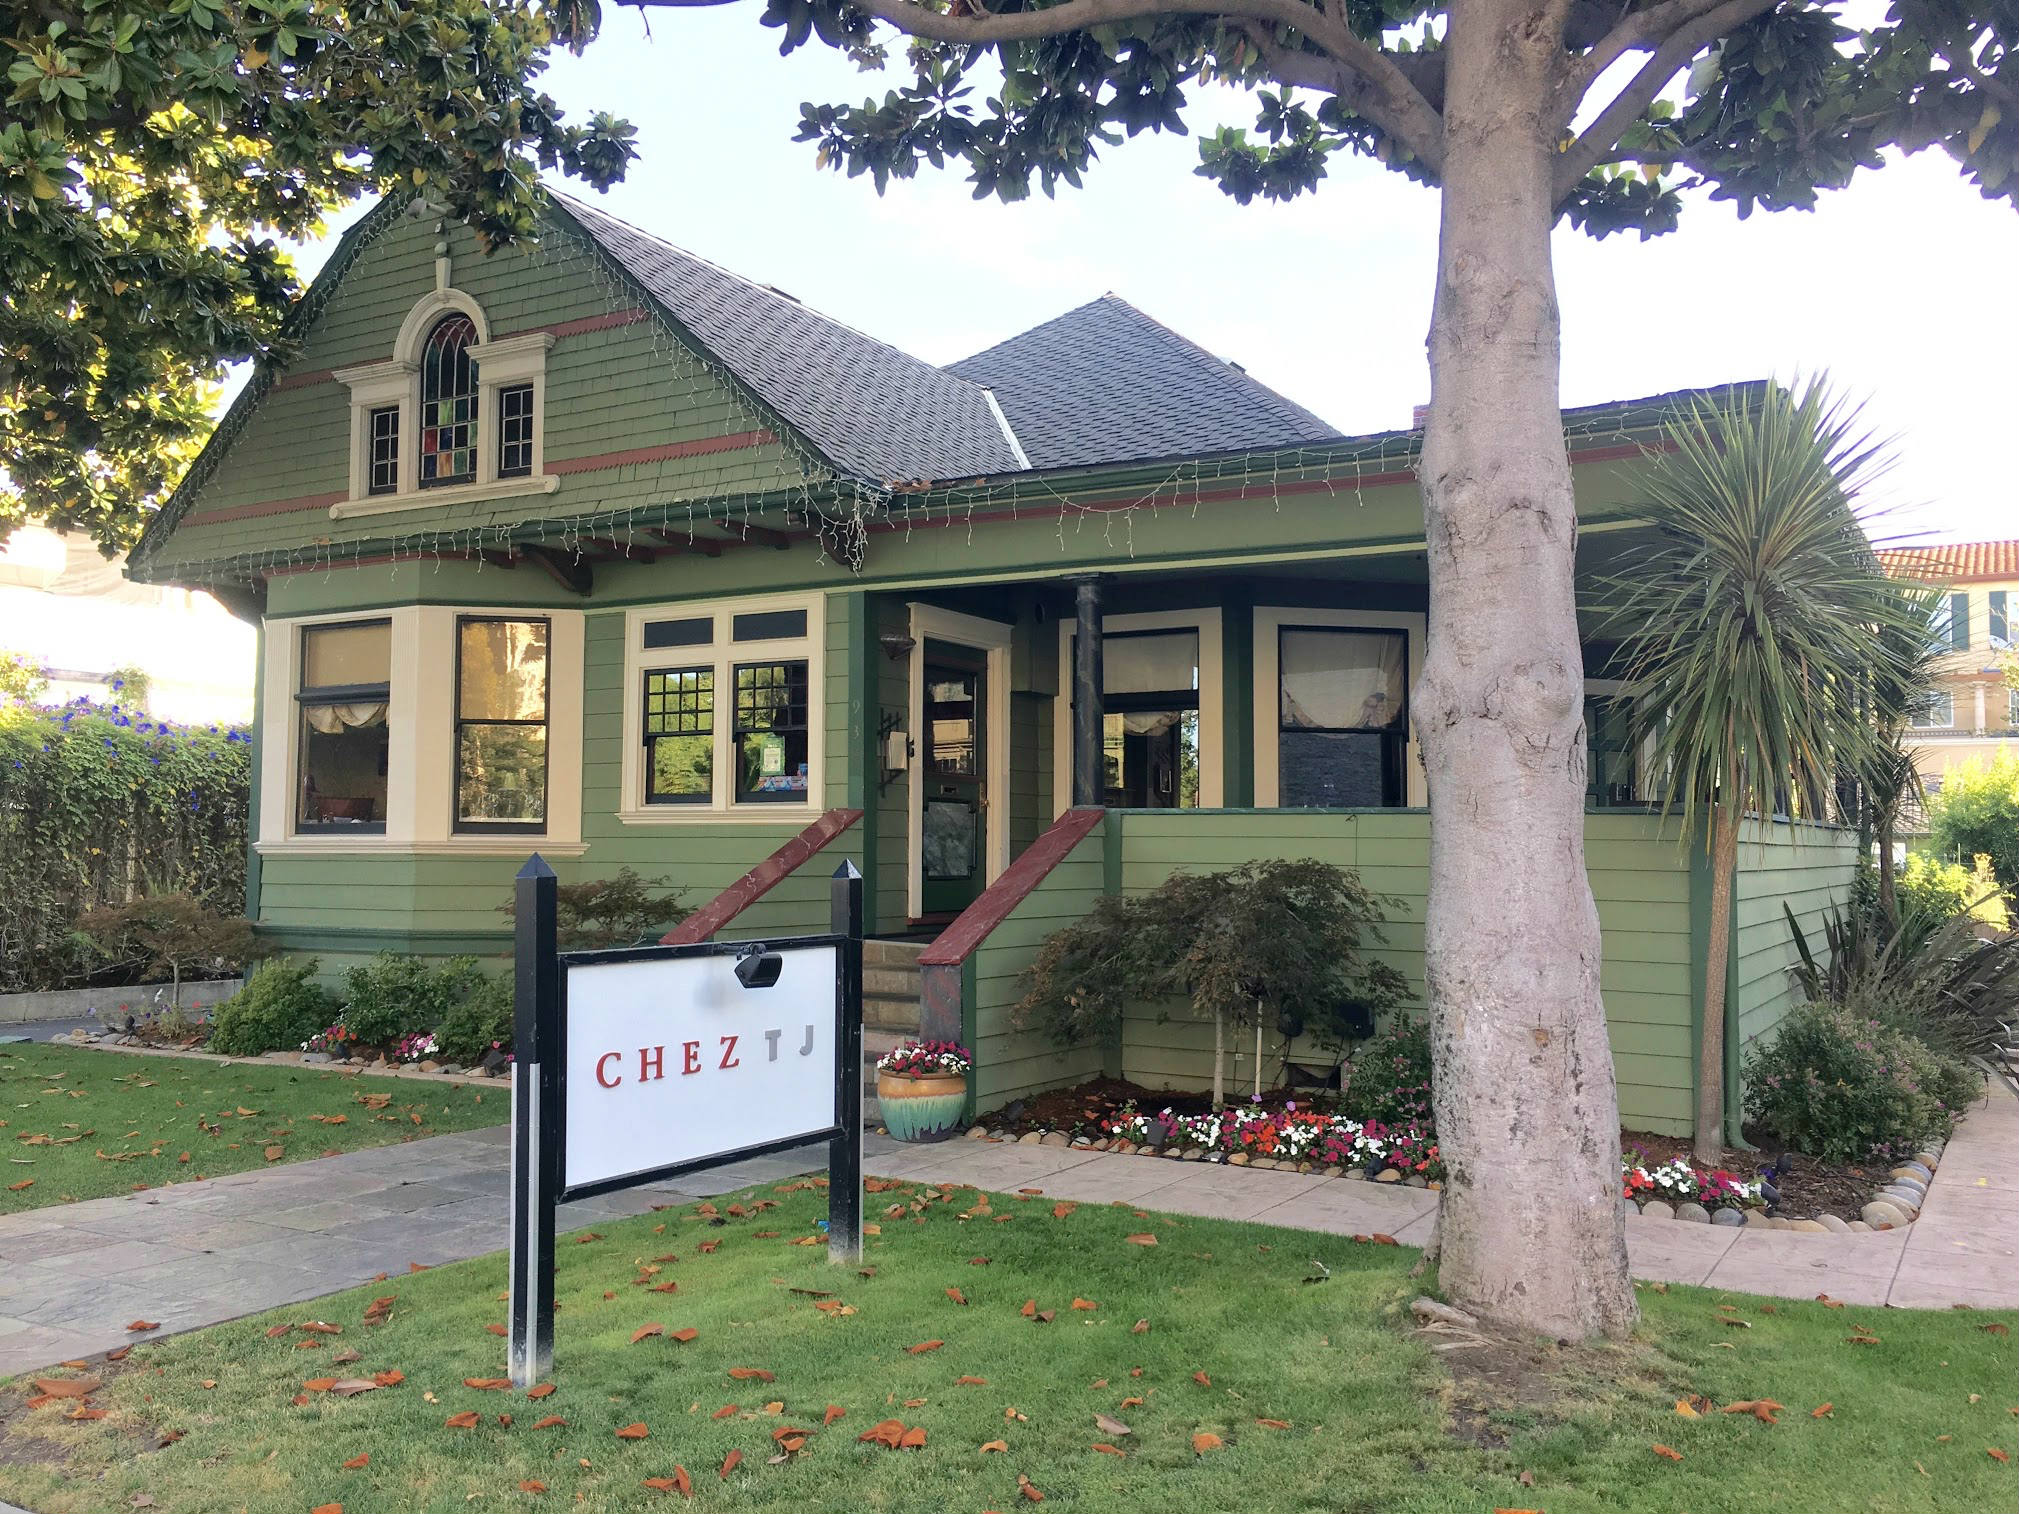 Livable Mountain View Announces Success in Campaign to Assign Historic Designation to Weilheimer House, Former Air Base Laundry